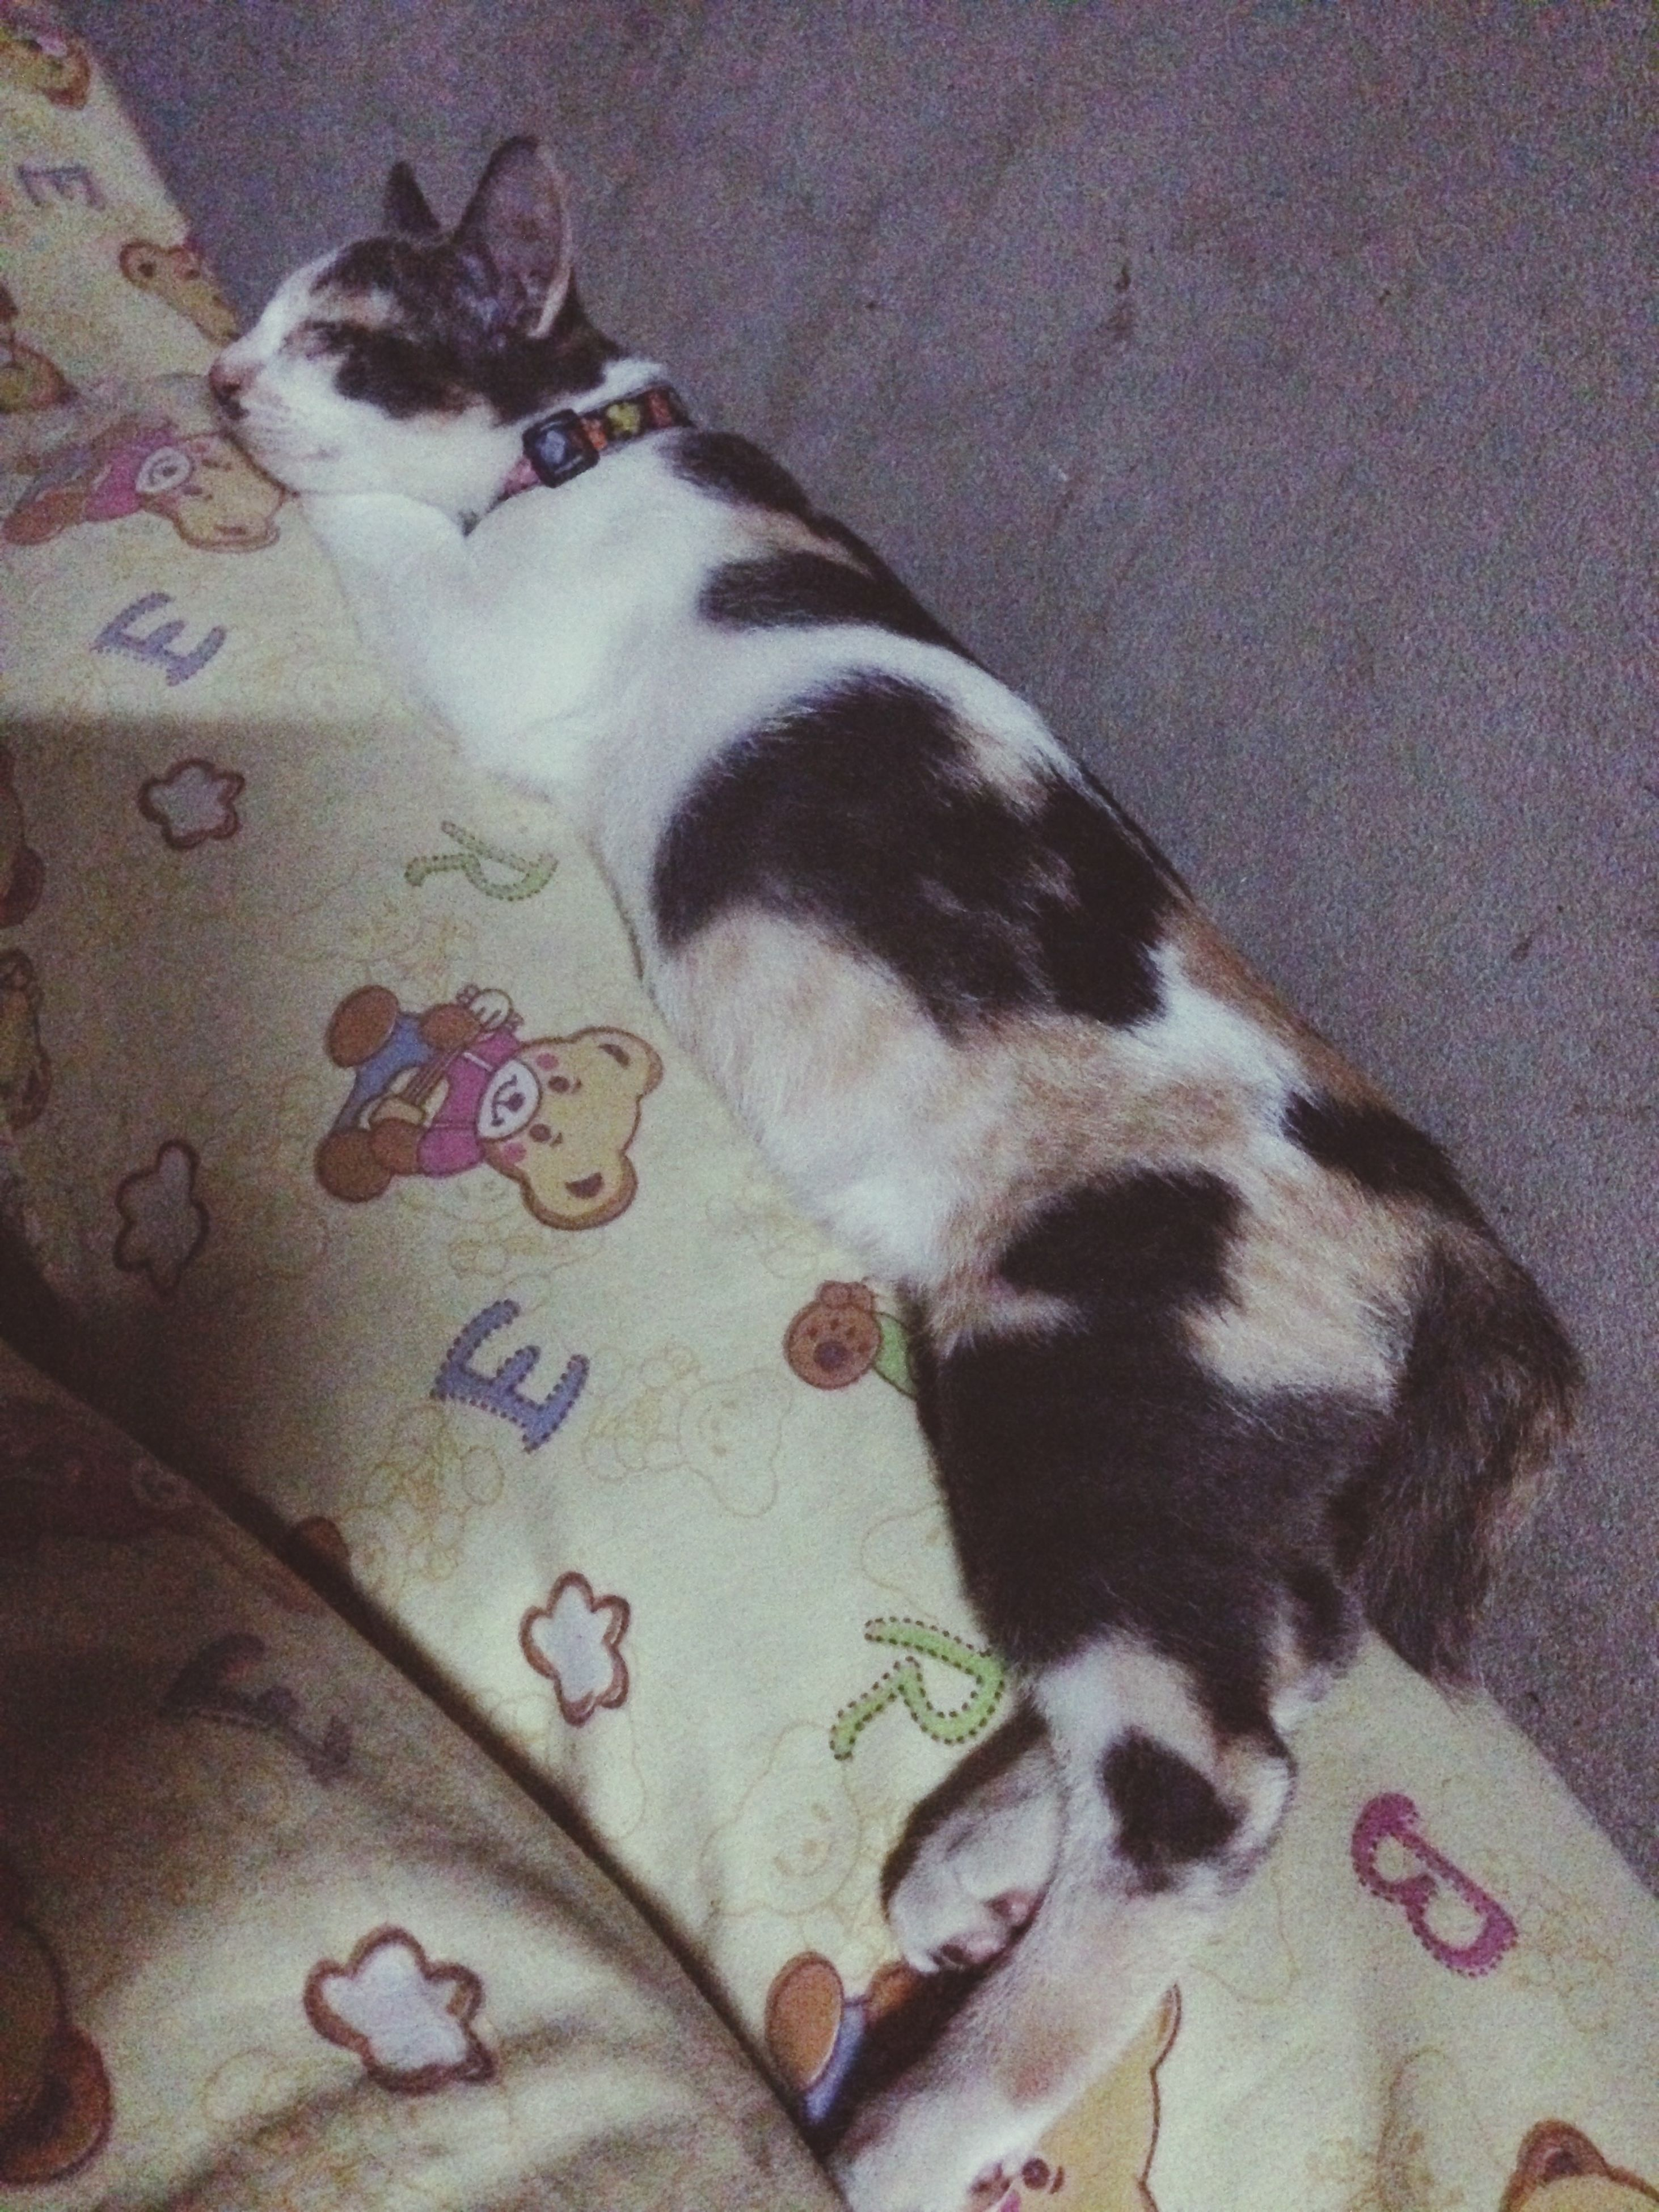 pets, domestic animals, animal themes, mammal, one animal, indoors, relaxation, domestic cat, cat, sleeping, lying down, dog, resting, high angle view, feline, home interior, bed, eyes closed, flooring, no people